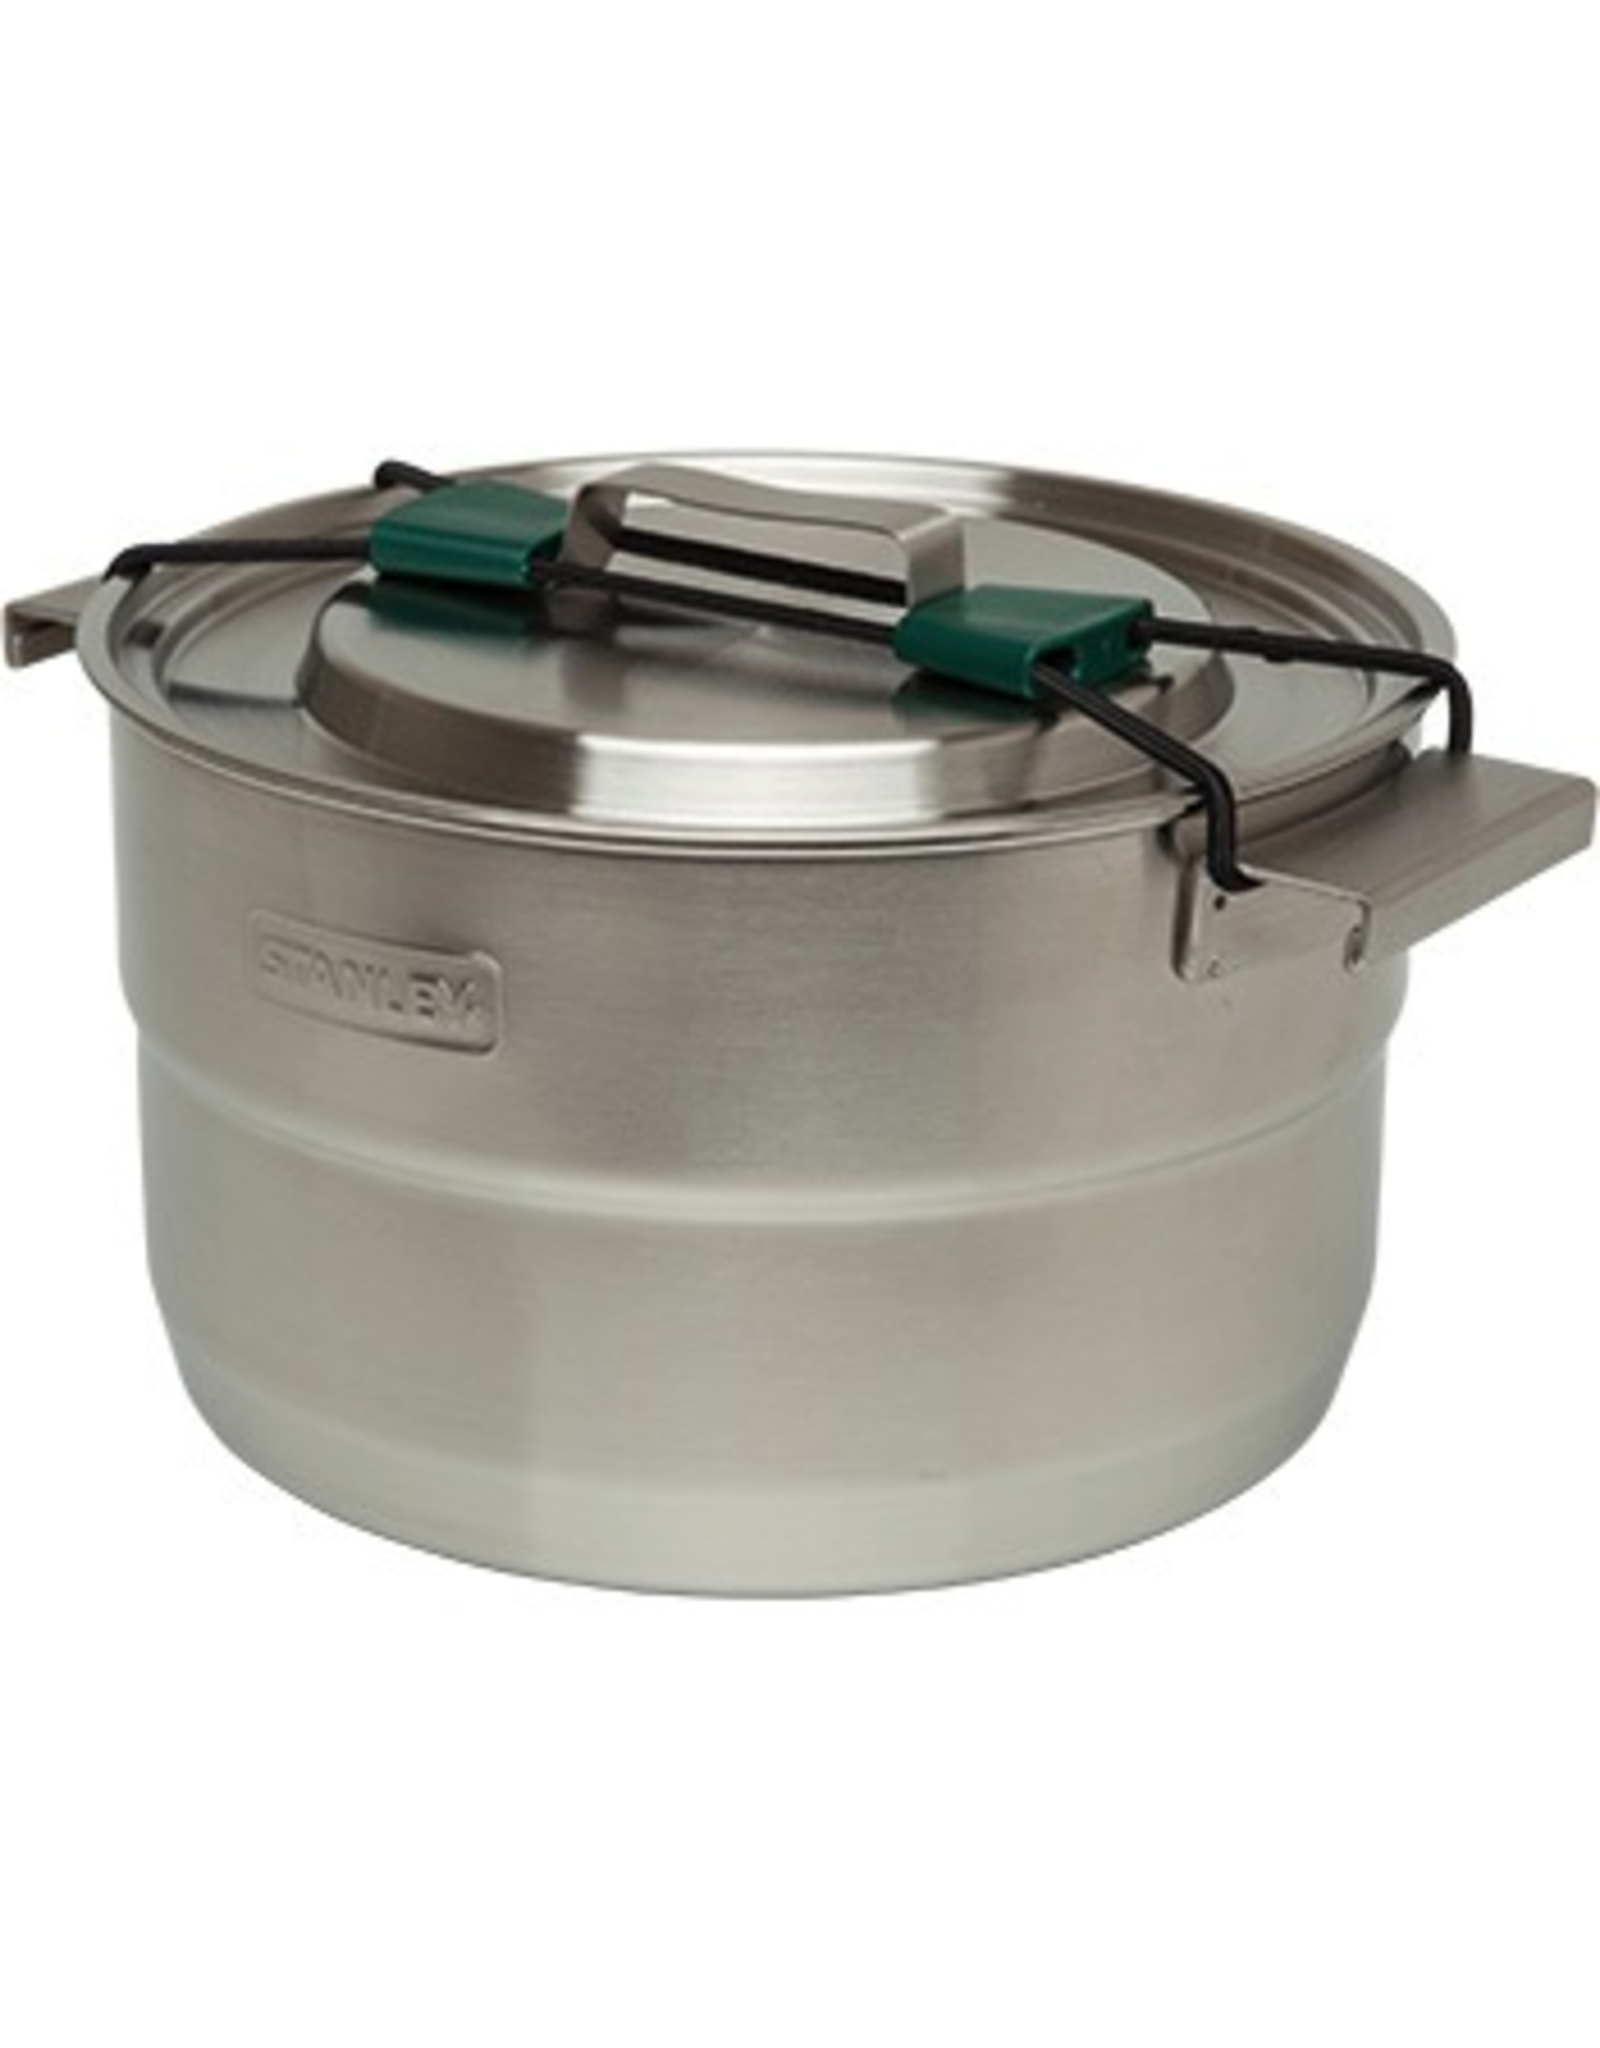 Stanley Stanley Adventure Base Camp Cook Set - 4 Person